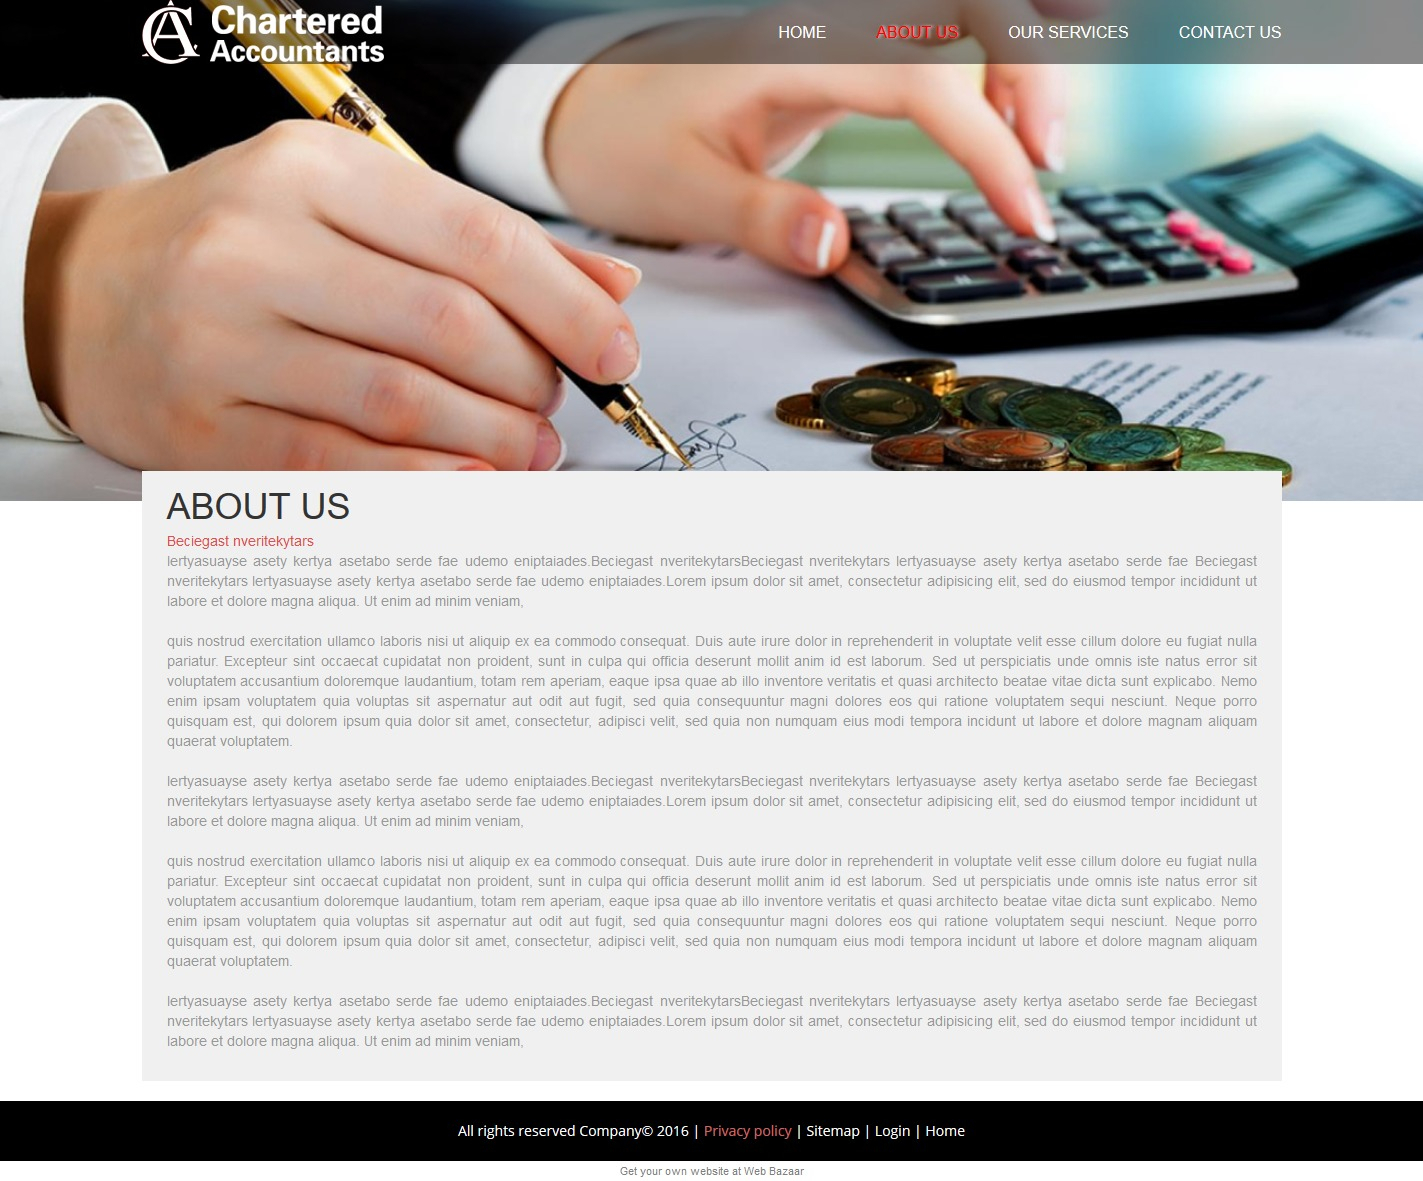 Web Design, Web Cms, Web Hosting, Personalized Domain Name   Web Bazaar Throughout Chartered Accountants Website Templates